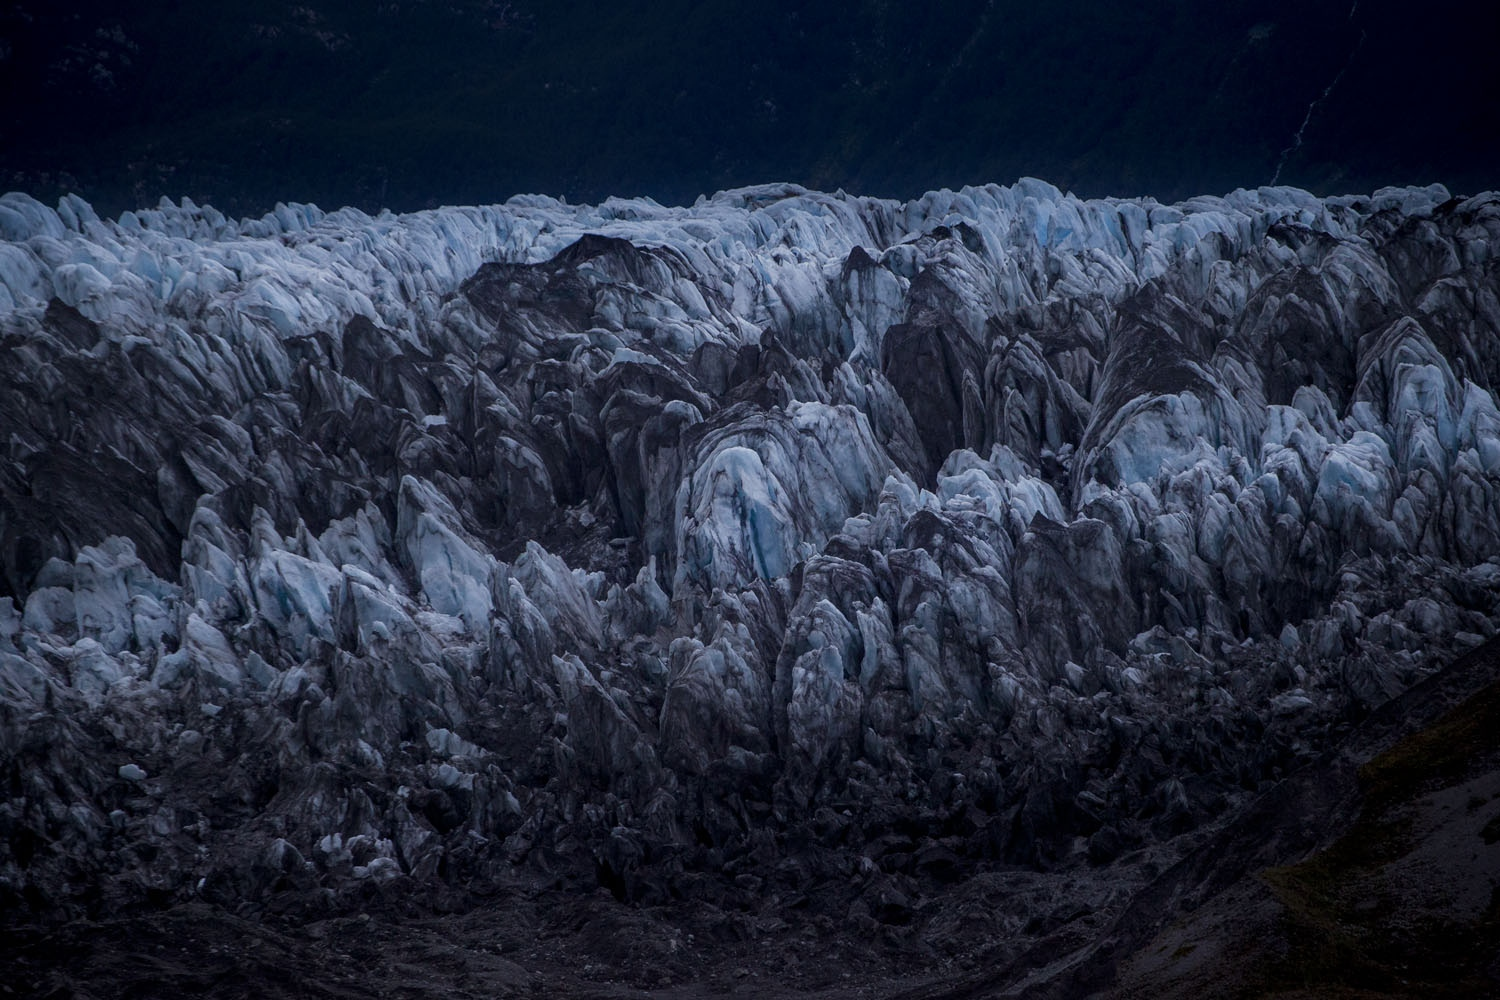 The Amalia Glacier, is a tidewater glacier located in Bernardo O'Higgins National Park on the edge of the Sarmiento Channel. The glacier originates in the Southern Patagonia ice field. From 1945 to 1986, its terminus retreated 7 km, being along with the recession of the O'Higgins glacier the most dramatic retreat of glaciers of the Southern Patagonia ice field during that period. Chile.